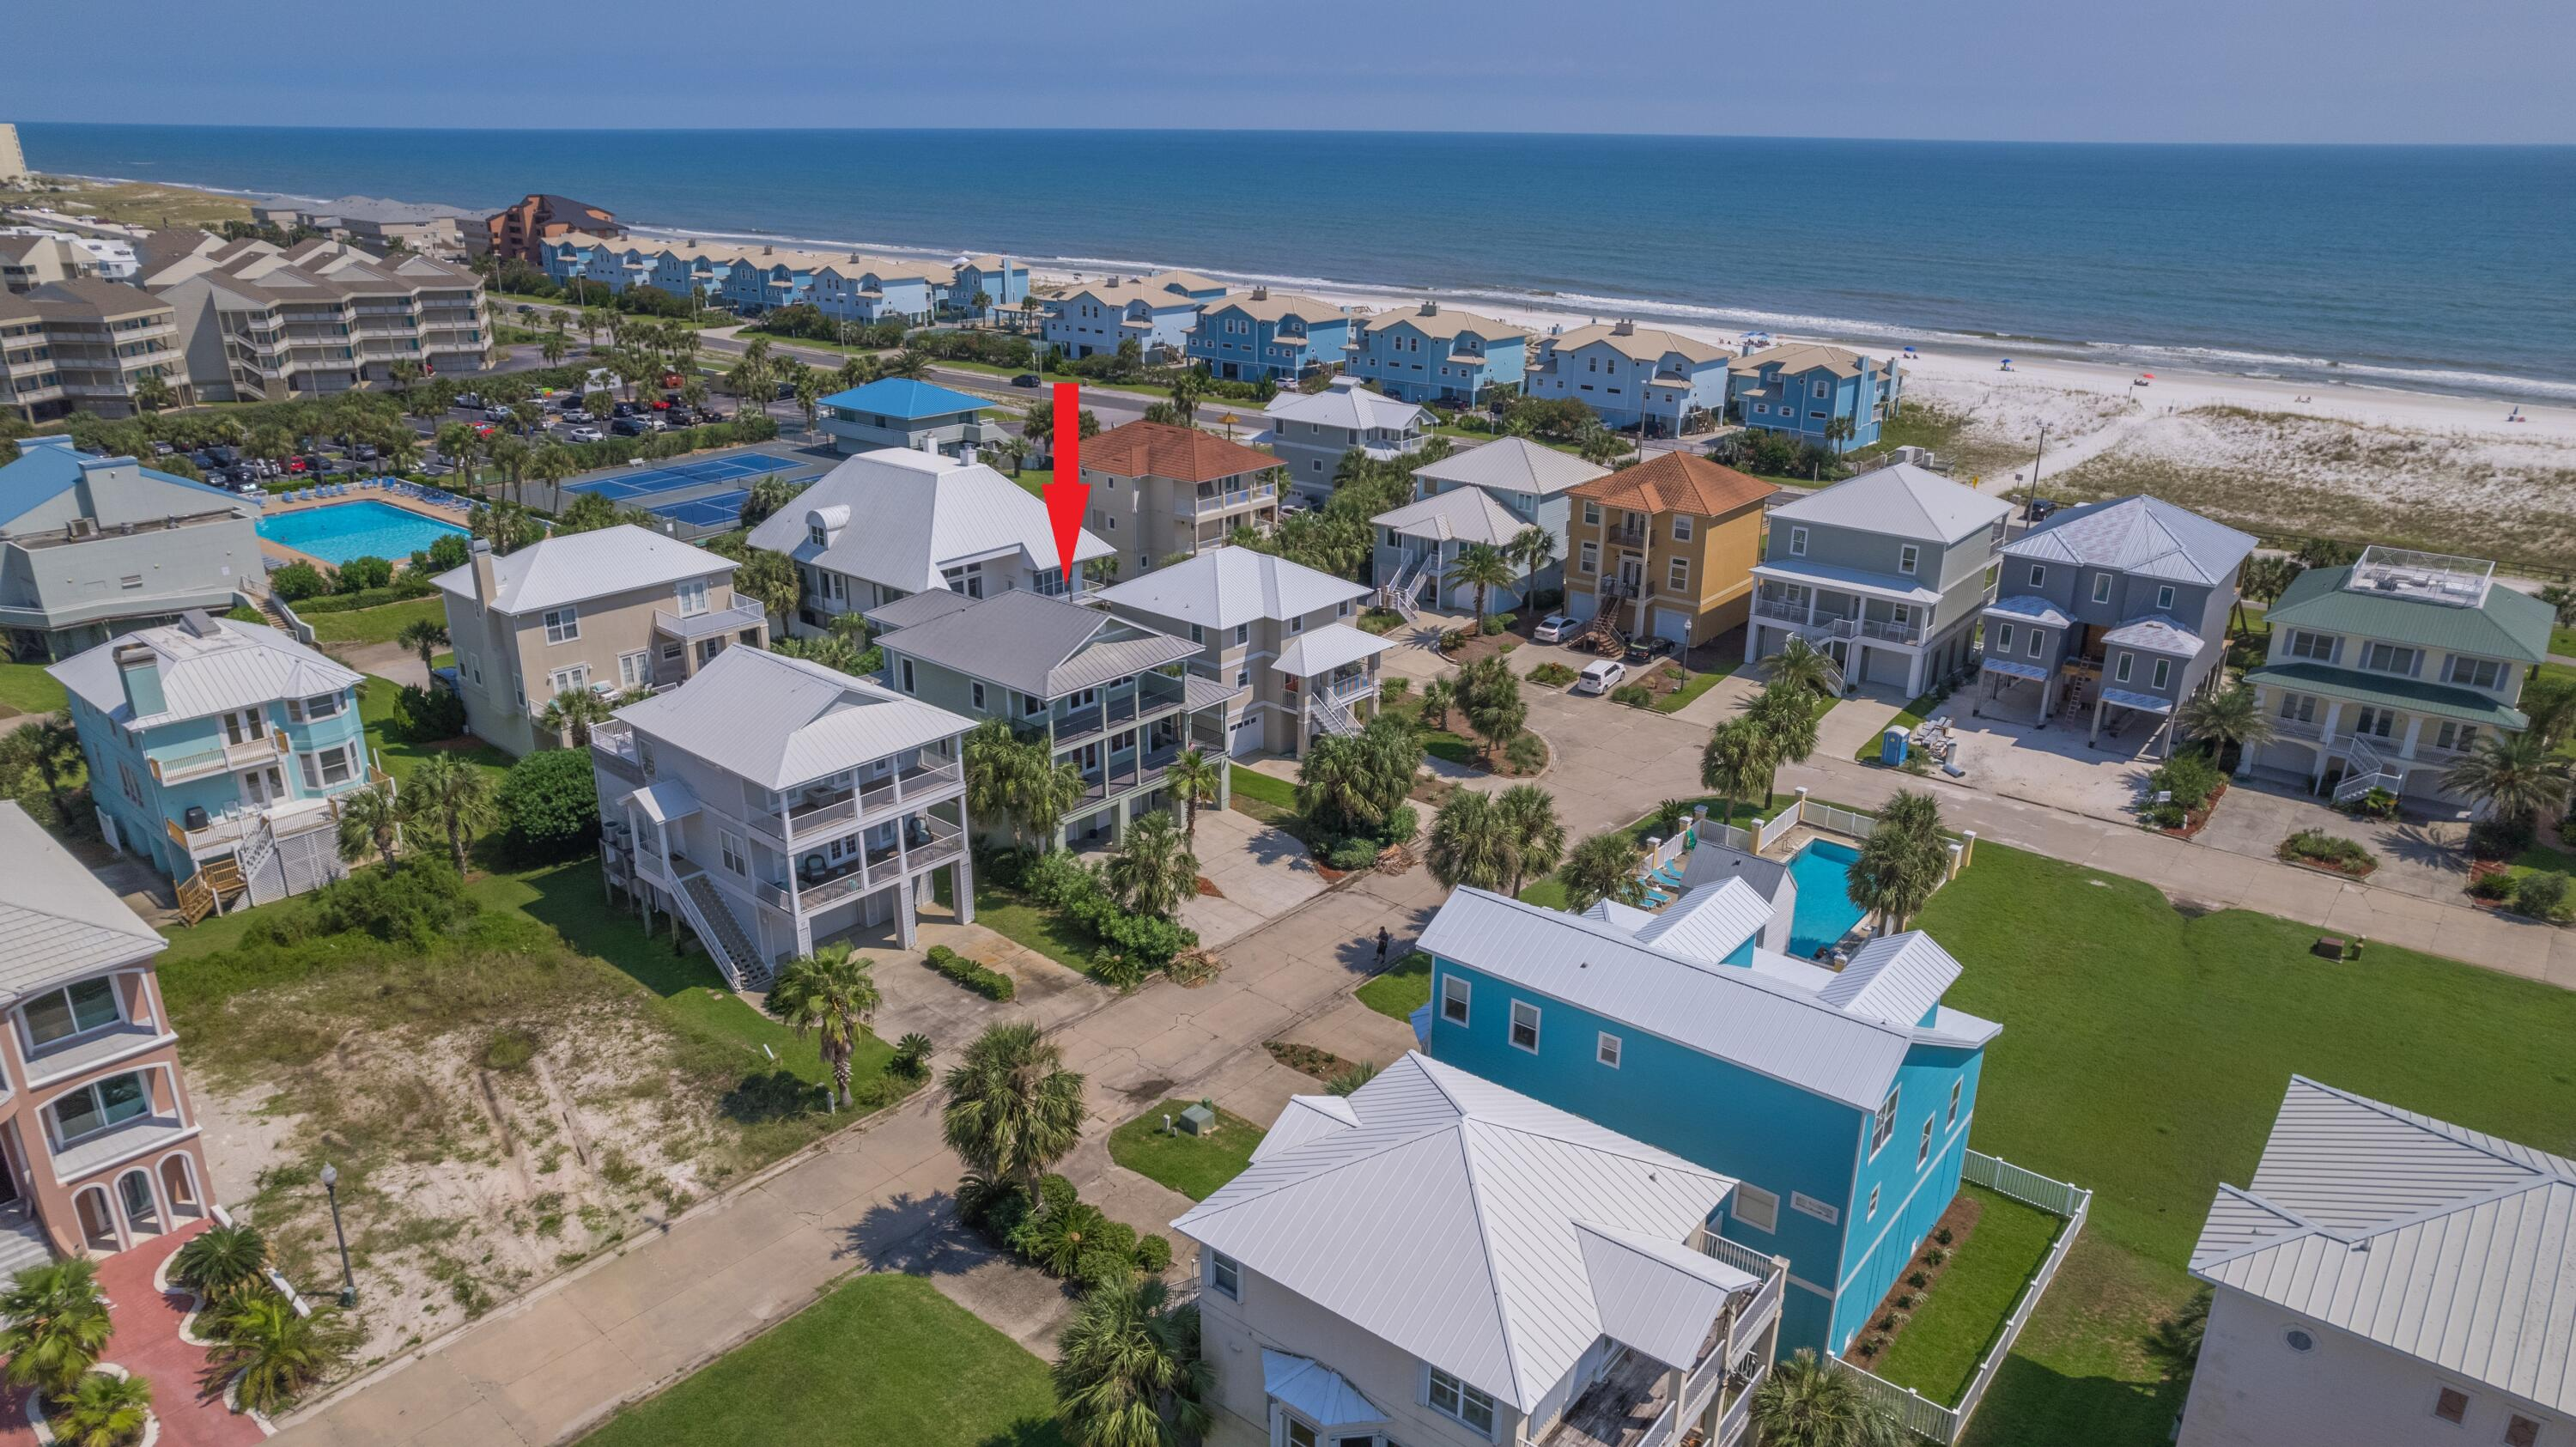 Located in the gated community of Deluna Point on Pensacola Beach, this home offers 3 separate covered balconies with impact windows, an open spacious floor plan with a large primary suite. This quiet neighborhood offers (no short term rentals) a community pool with a pier and deeded Sound access. You'll enjoy the high ceilings 10 foot throughout, travertine and hardwood flooring with surround sound and additional storage space in the garage. The main living floor has a bedroom with a full bathroom, oversized laundry room and 2 separate balconies. There are 2 covered balconies (39x9) on the front side of the house offering some water views from the third floor. With French doors opening from the living area to the spacious balcony, this space is ideal for entertaining guests or enjoying a Located in the gated community of Deluna Point on Pensacola Beach, this home offers 3 separate covered balconies with impact windows, an open spacious floor plan with a large primary suite. This quiet neighborhood offers (no short term rentals) a community pool with a pier and deeded Sound access. You'll enjoy the high ceilings 10 foot throughout, travertine and hardwood flooring with surround sound and additional storage space in the garage. The main living floor has a bedroom with a full bathroom, oversized laundry room and 2 separate balconies. There are 2 covered balconies (39x9) on the front side of the house offering some water views from the third floor. With French doors opening from the living area to the spacious balcony, this space is ideal for entertaining guests or enjoying a peaceful sunset. The primary suite also offers a private balcony on the third floor and a spacious bathroom with a double stone top vanity, jetted tub, separate custom tile walk-in shower with dual shower heads, water closet, linen closet and walk-in closet with custom shelving. Other notables are BRAND NEW HVAC unit upstairs, metal roof, Levolor blinds throughout, wine fridge, Viking refrigerator